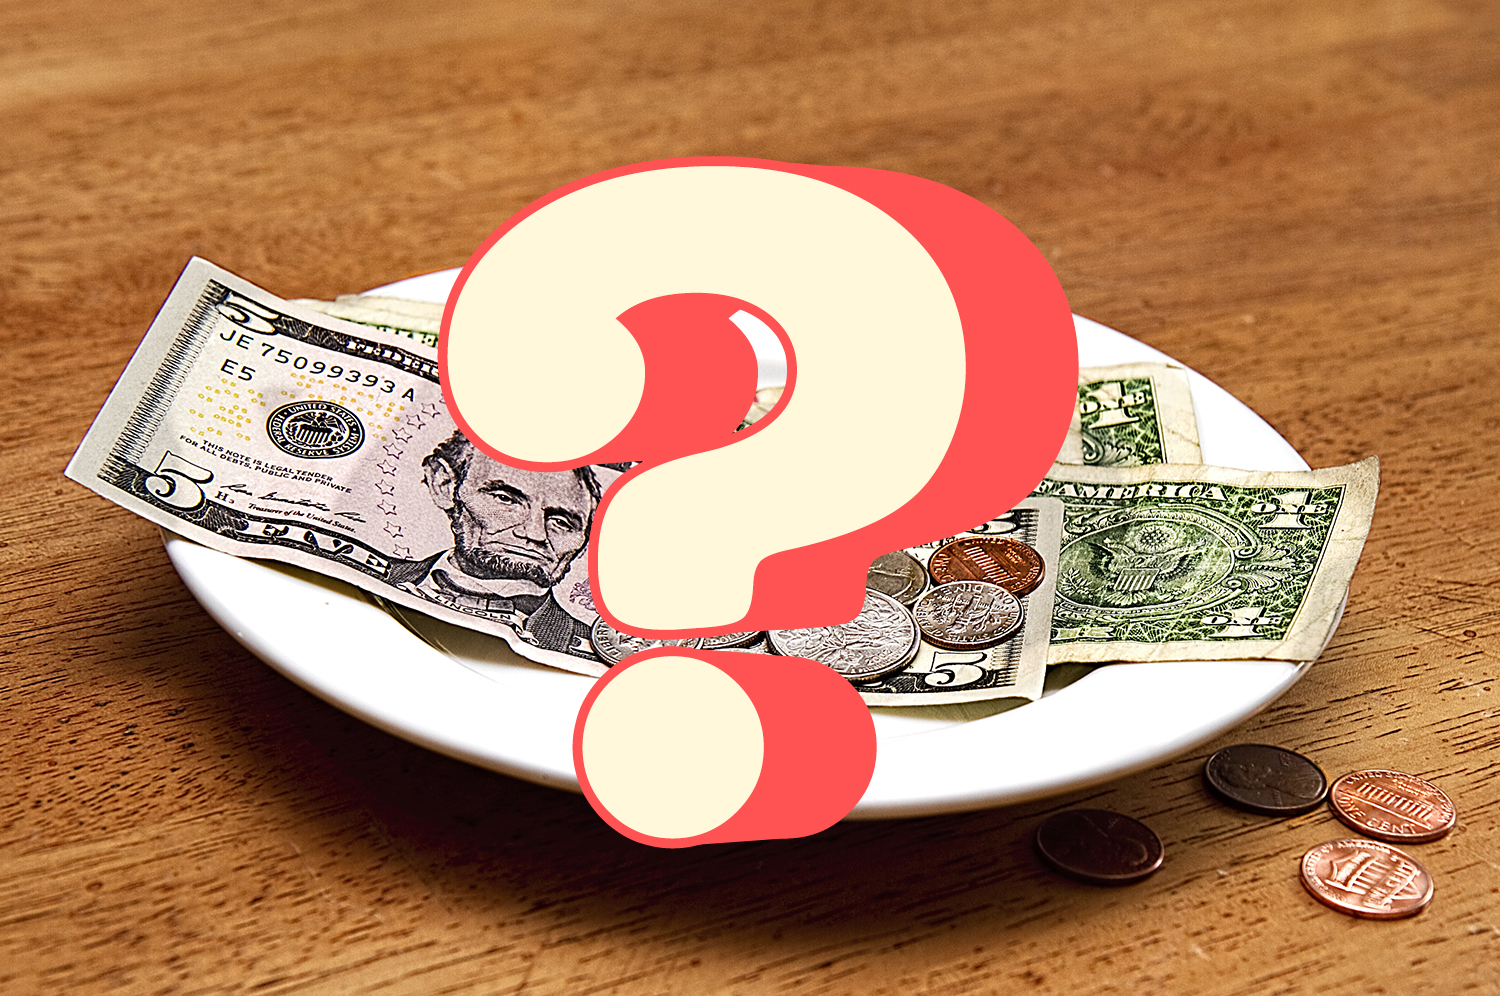 A question mark lingers over a plate with small bills and coins left as a tip.